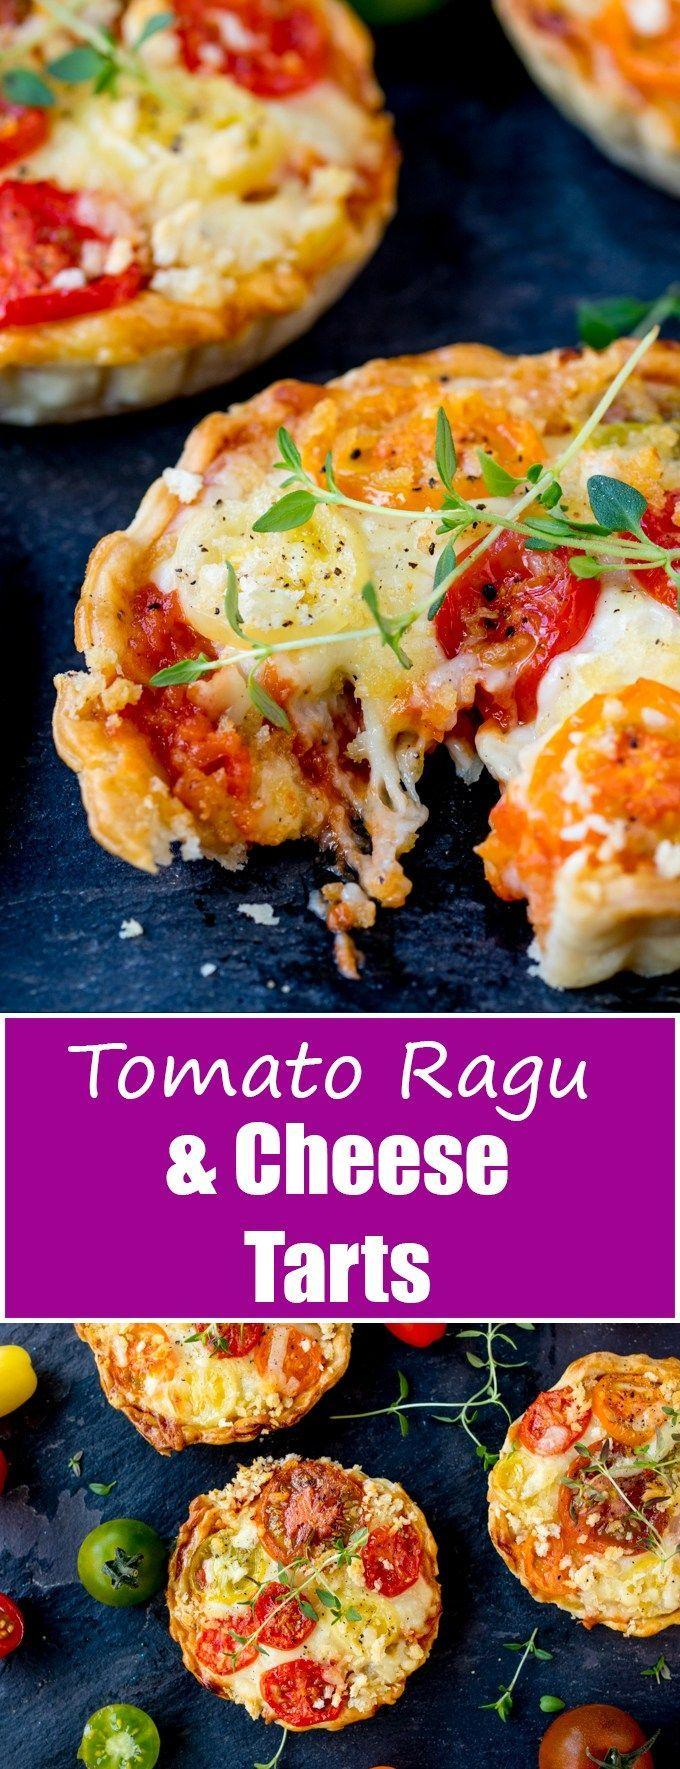 Mariage - Cheese And Tomato Tarts (Not Quiche!!)